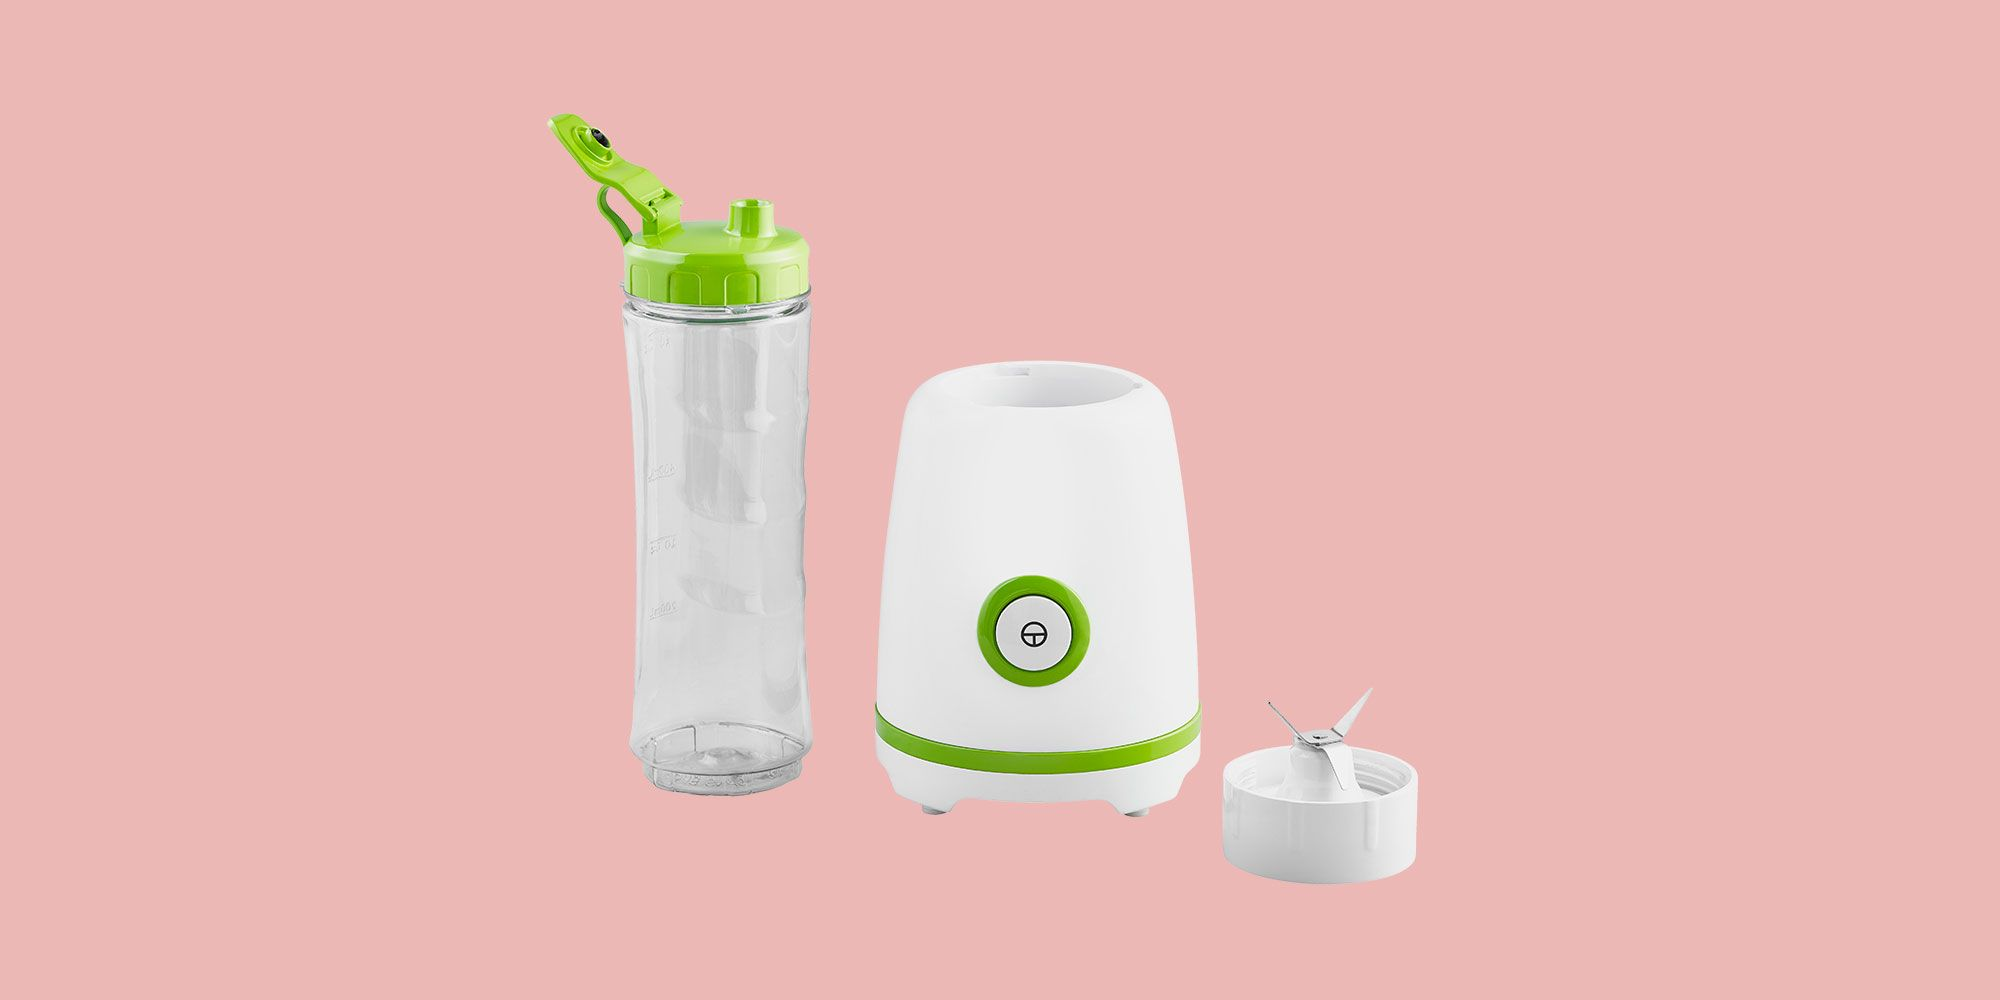 Asda George Home Twist & Go Personal Blender GPB101W Review